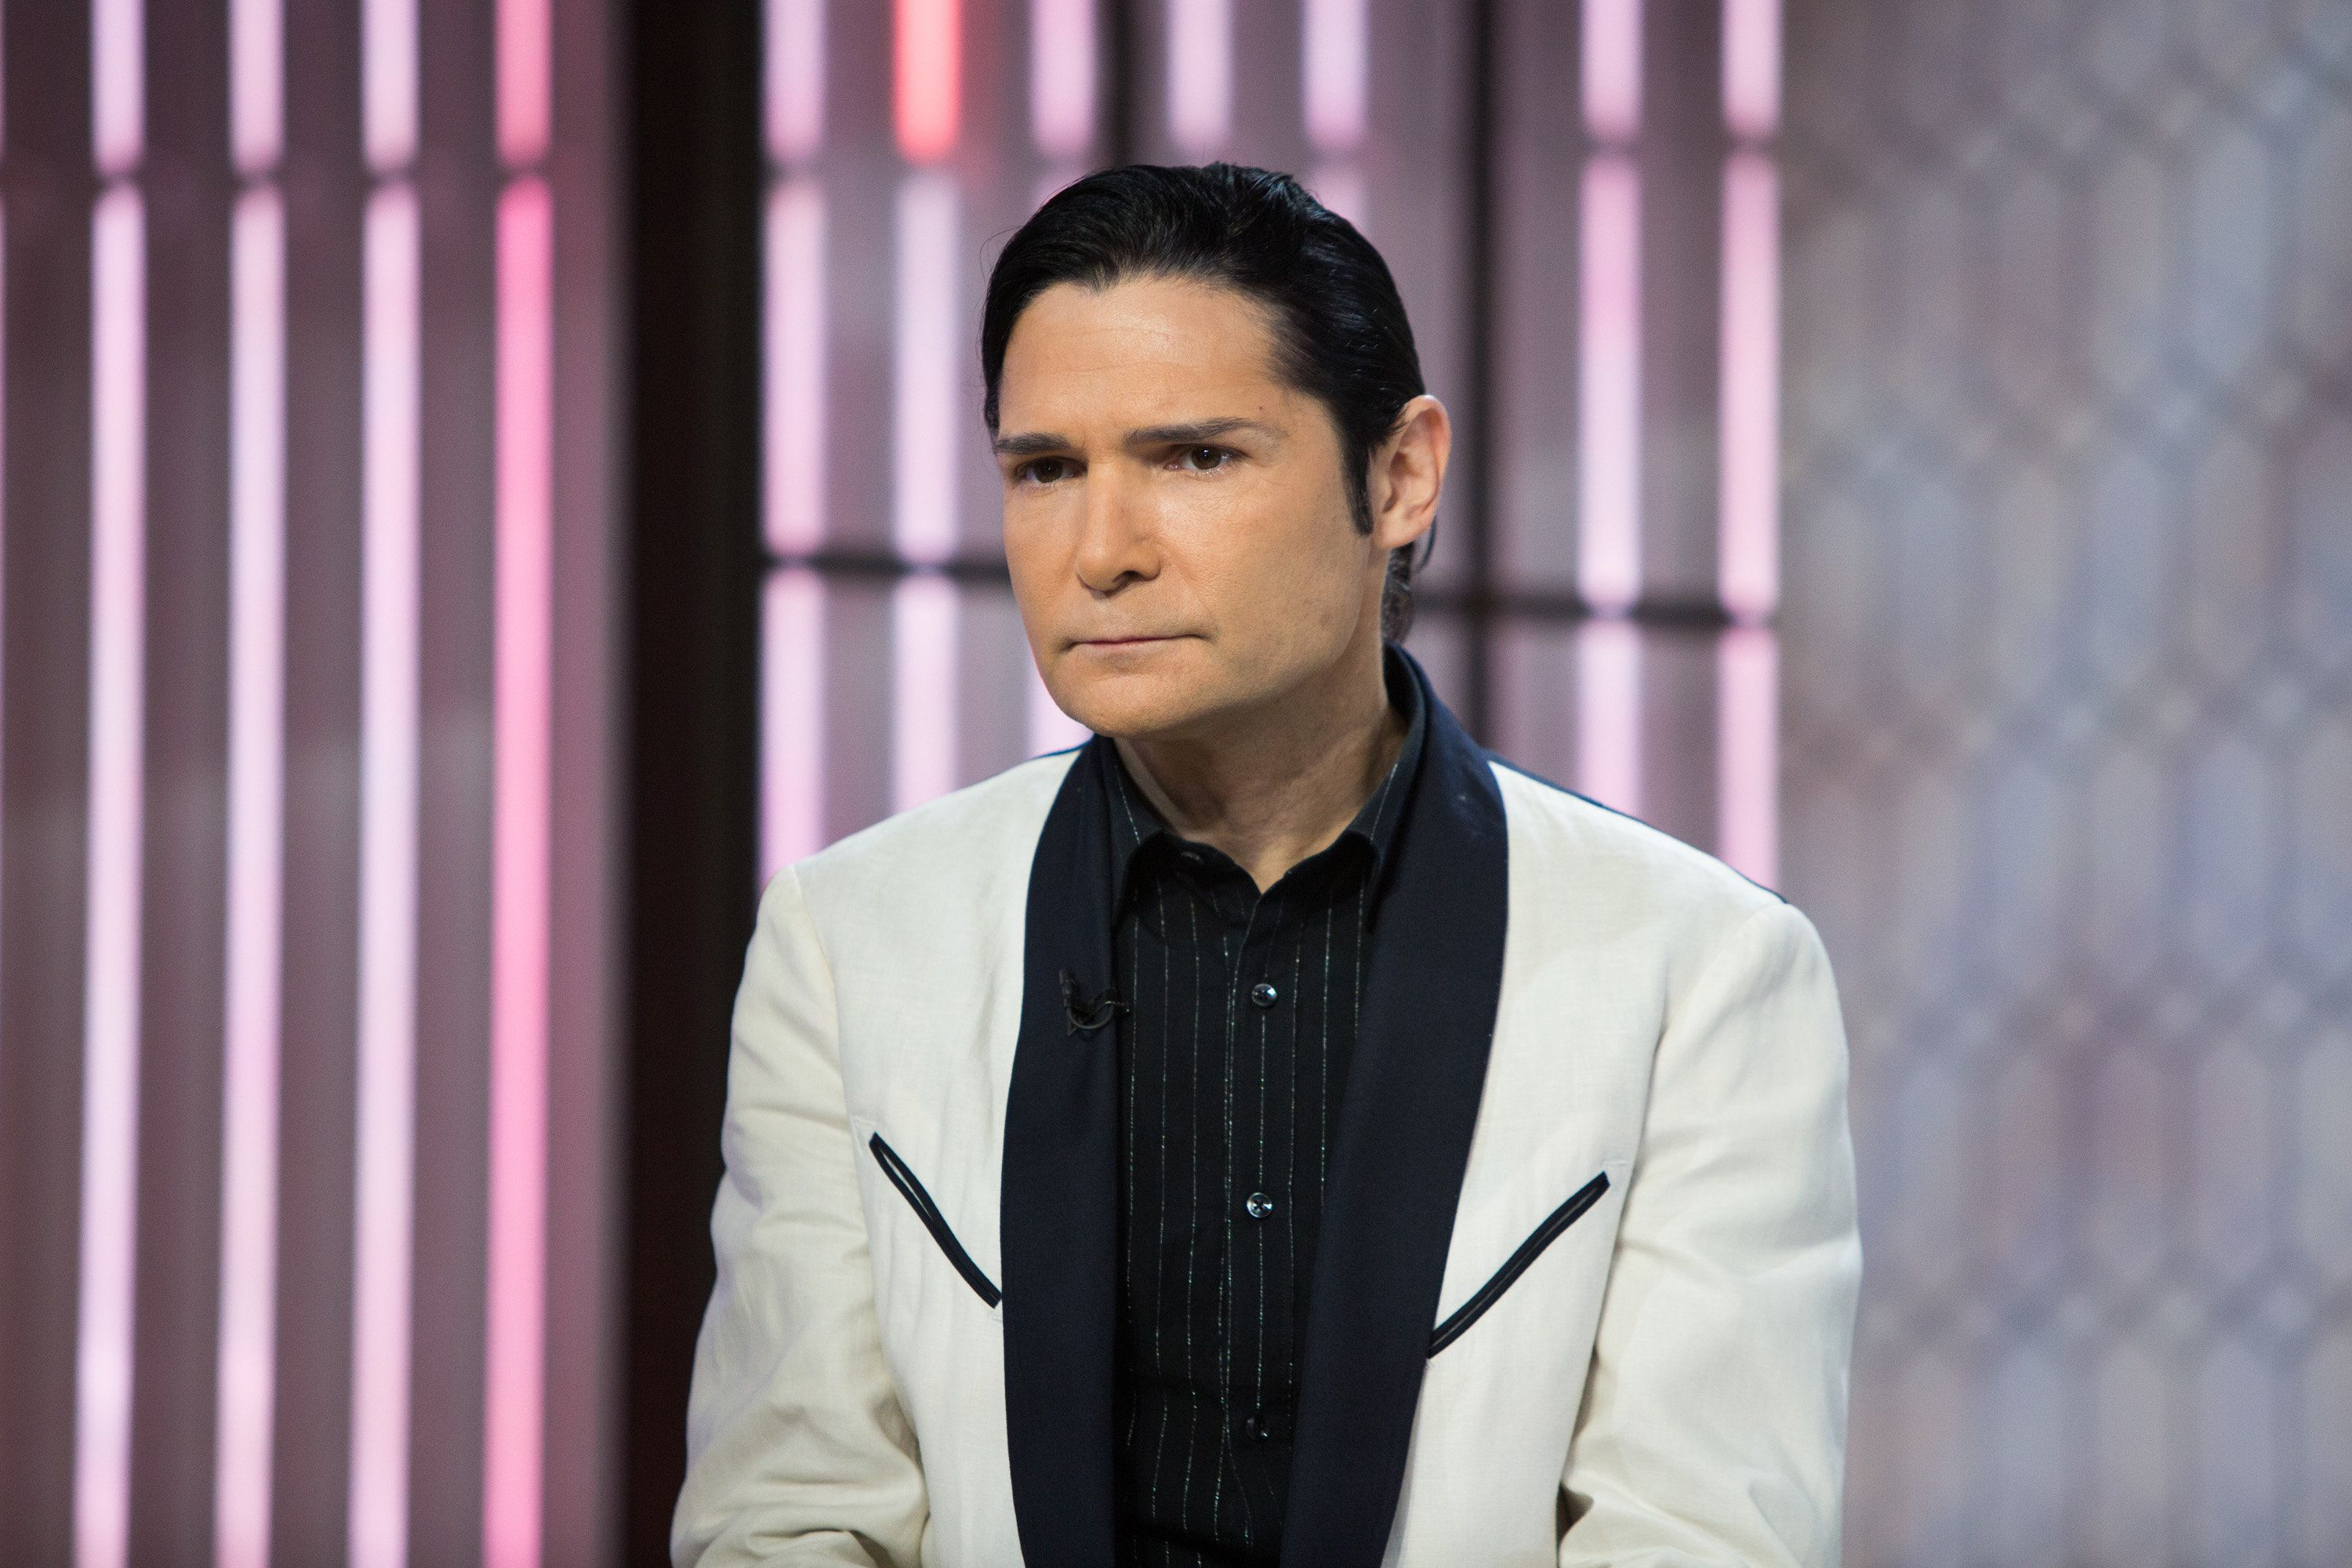 Corey Feldman's 1993 tapes about sexual abuse have been found